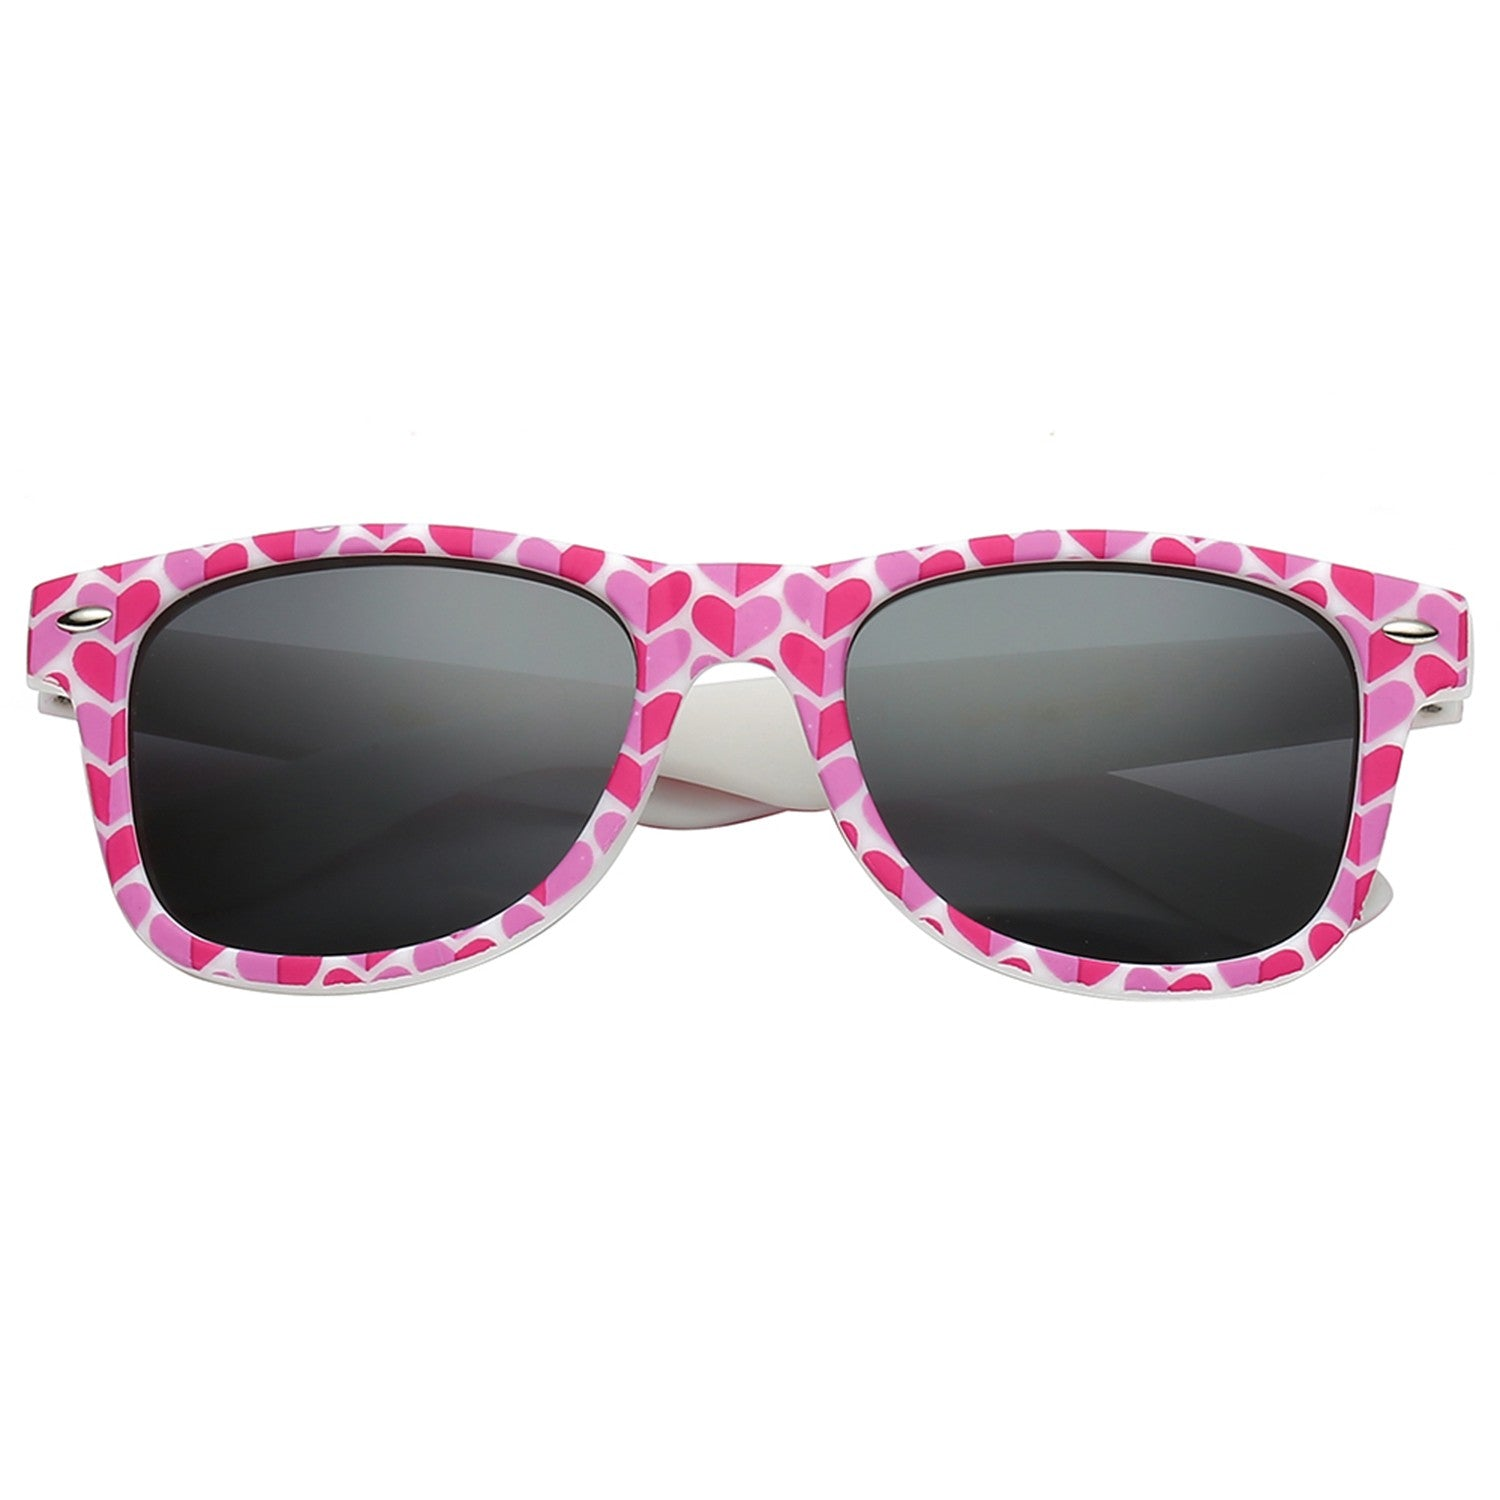 Polarspex Polarized 80's Retro Style Kids Sunglasses with Rubberized Valentine Heart Frames and Polarized Smoke Lenses for Boys and Girls